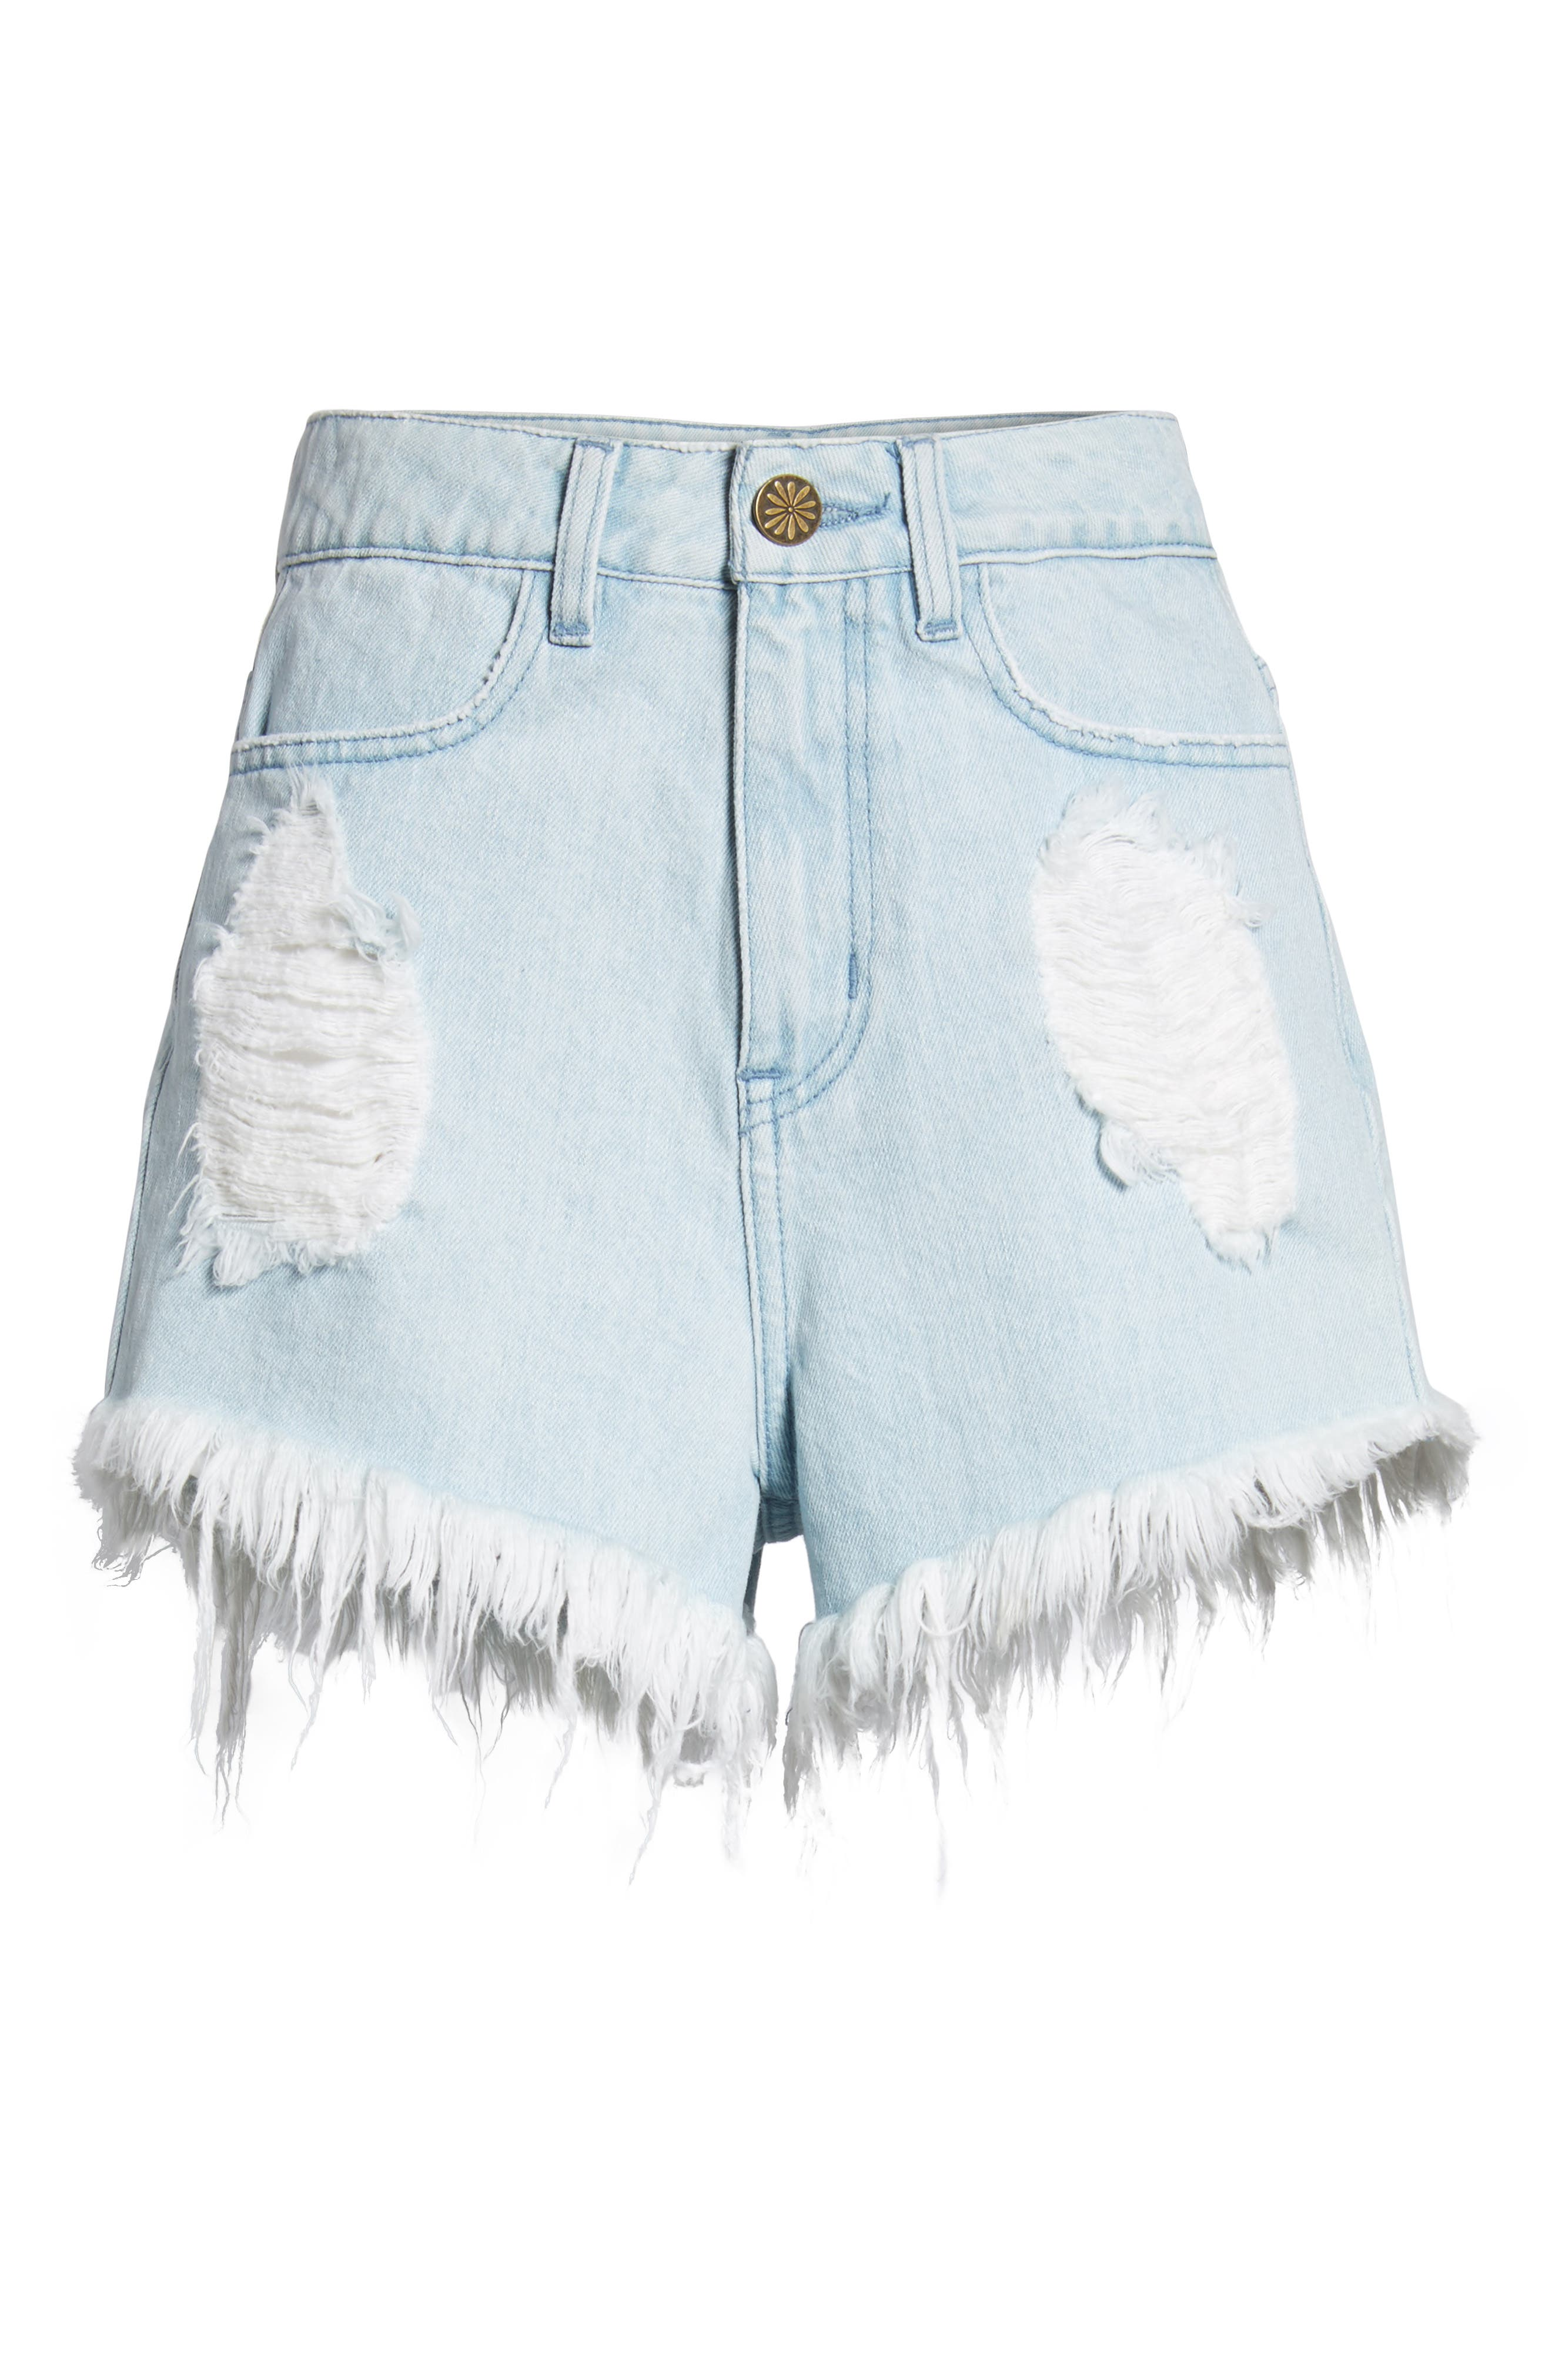 Wyoming High Waist Cutoff Denim Shorts,                             Alternate thumbnail 6, color,                             WHITEWATER WITH CACTUS